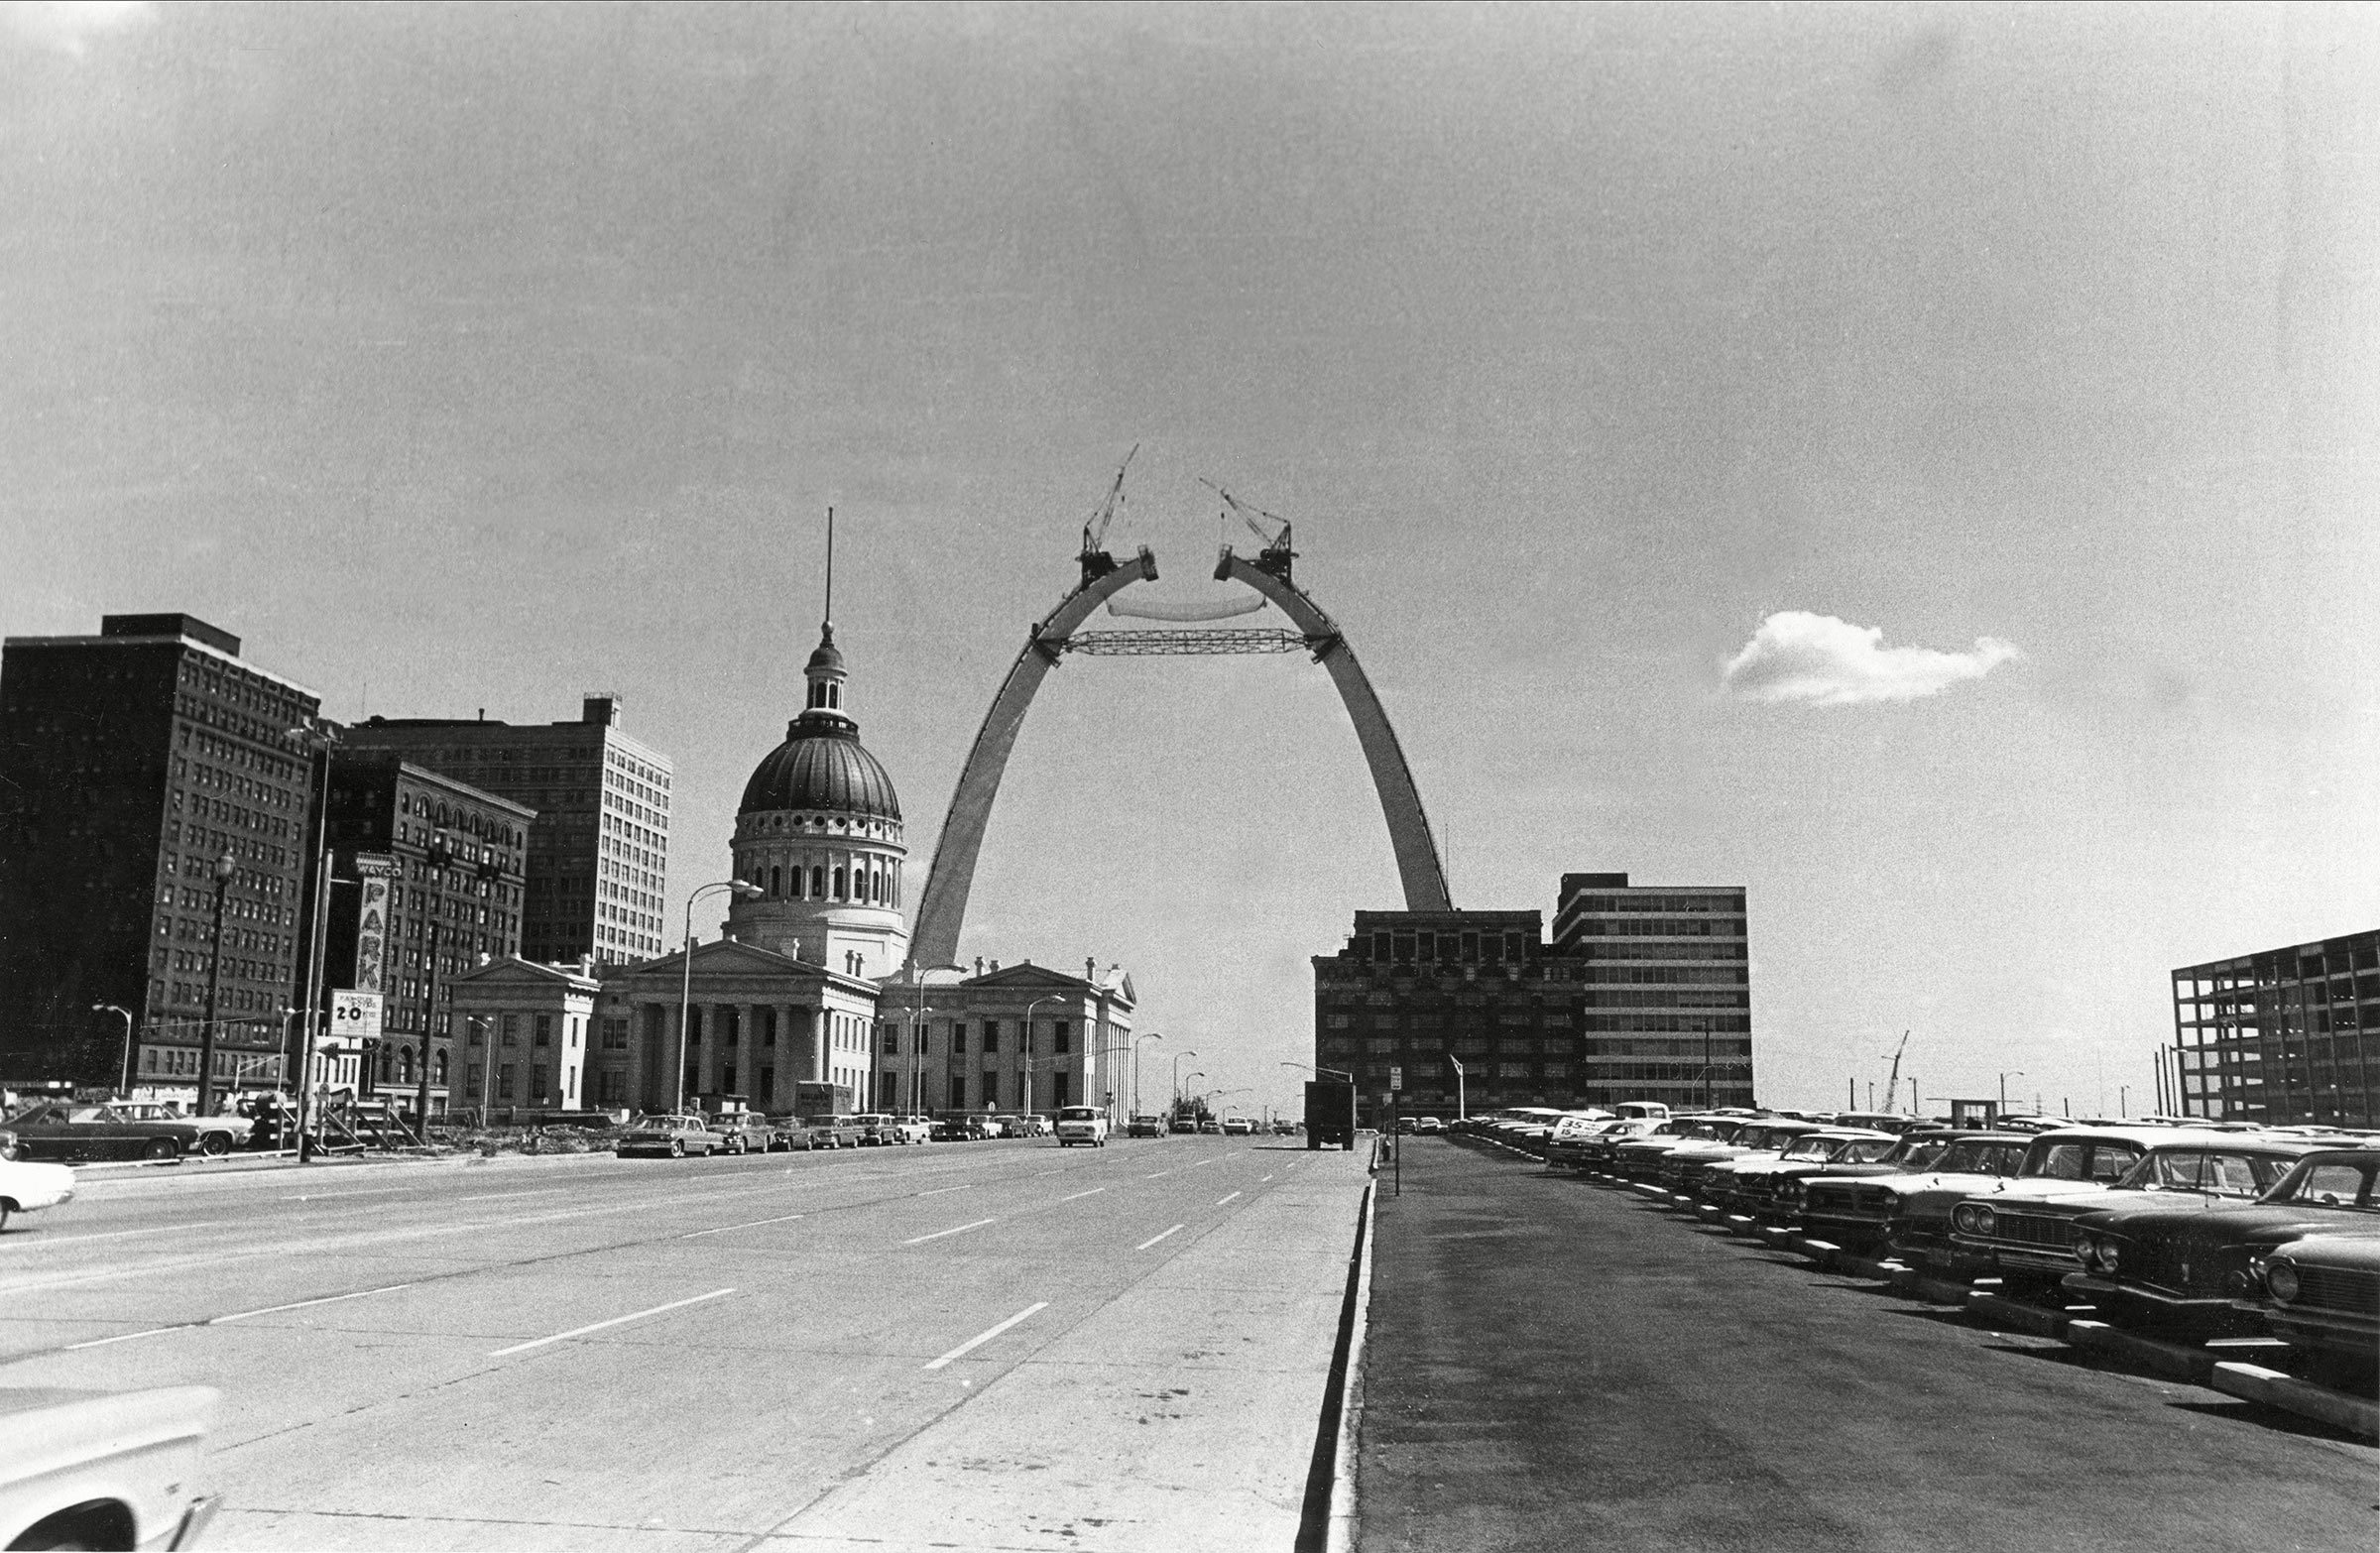 GATEWAY ARCH CONSTRUCTION, ST. LOUIS, USA